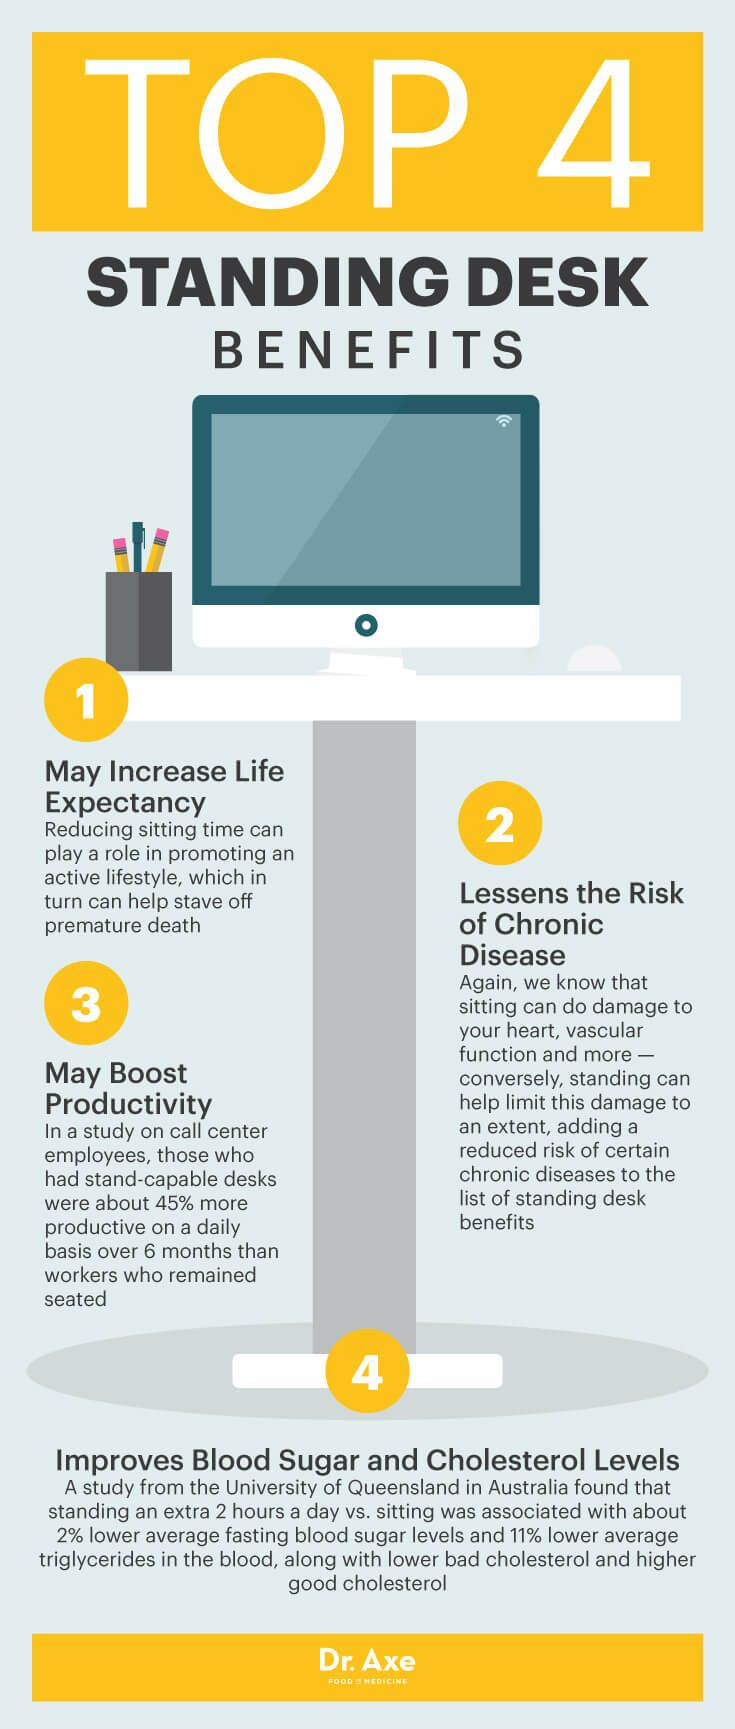 Benefits Of Standing Desk Ideas For Decorating A Desk Check More At Http Www Gameintown Com Standing Desk Benefits Diy Standing Desk How To Increase Energy